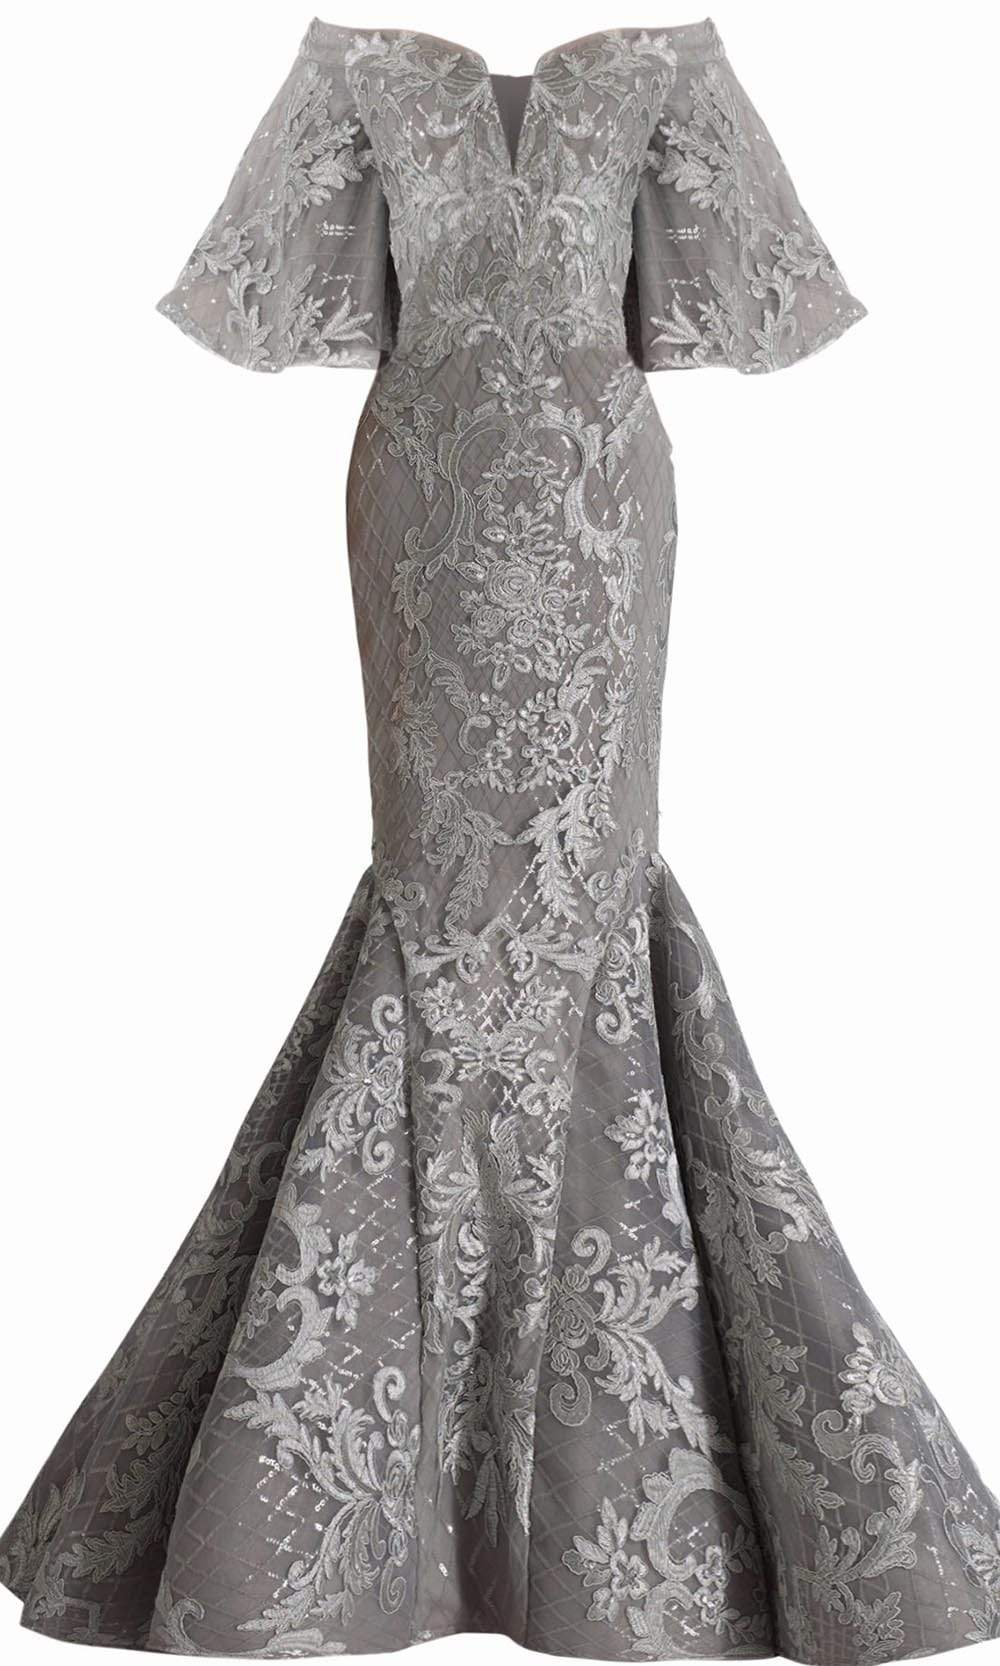 Janique - JA4013 Off-Shoulder Mermaid Evening Dress In Silver from Janique